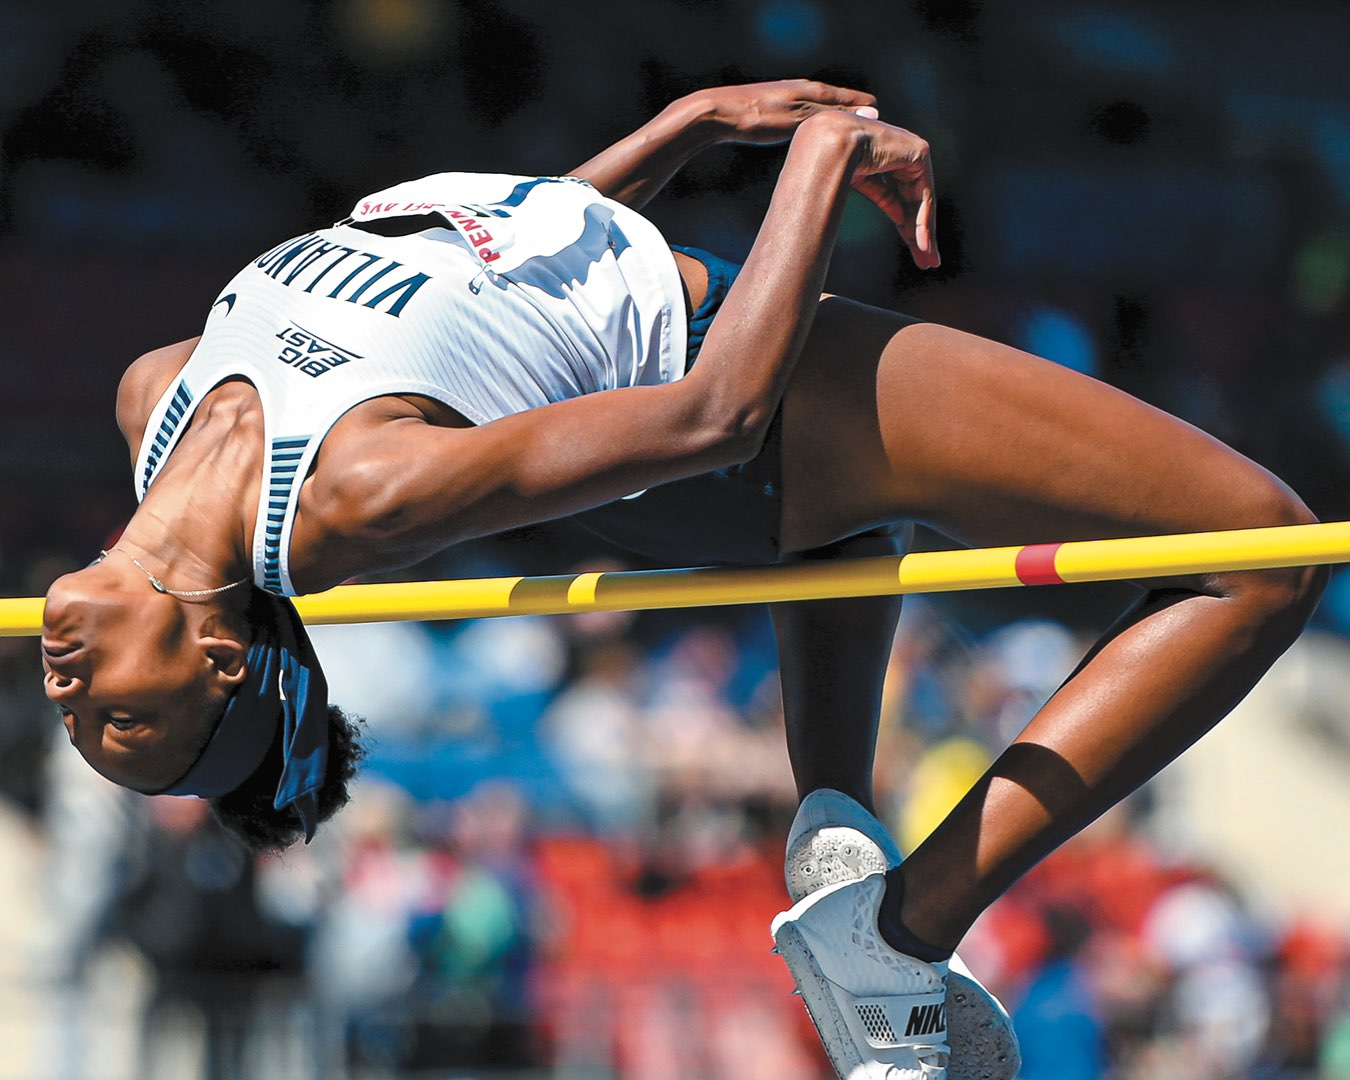 Freshman Sanaa Barnes arched over the yellow high bar in mid jump